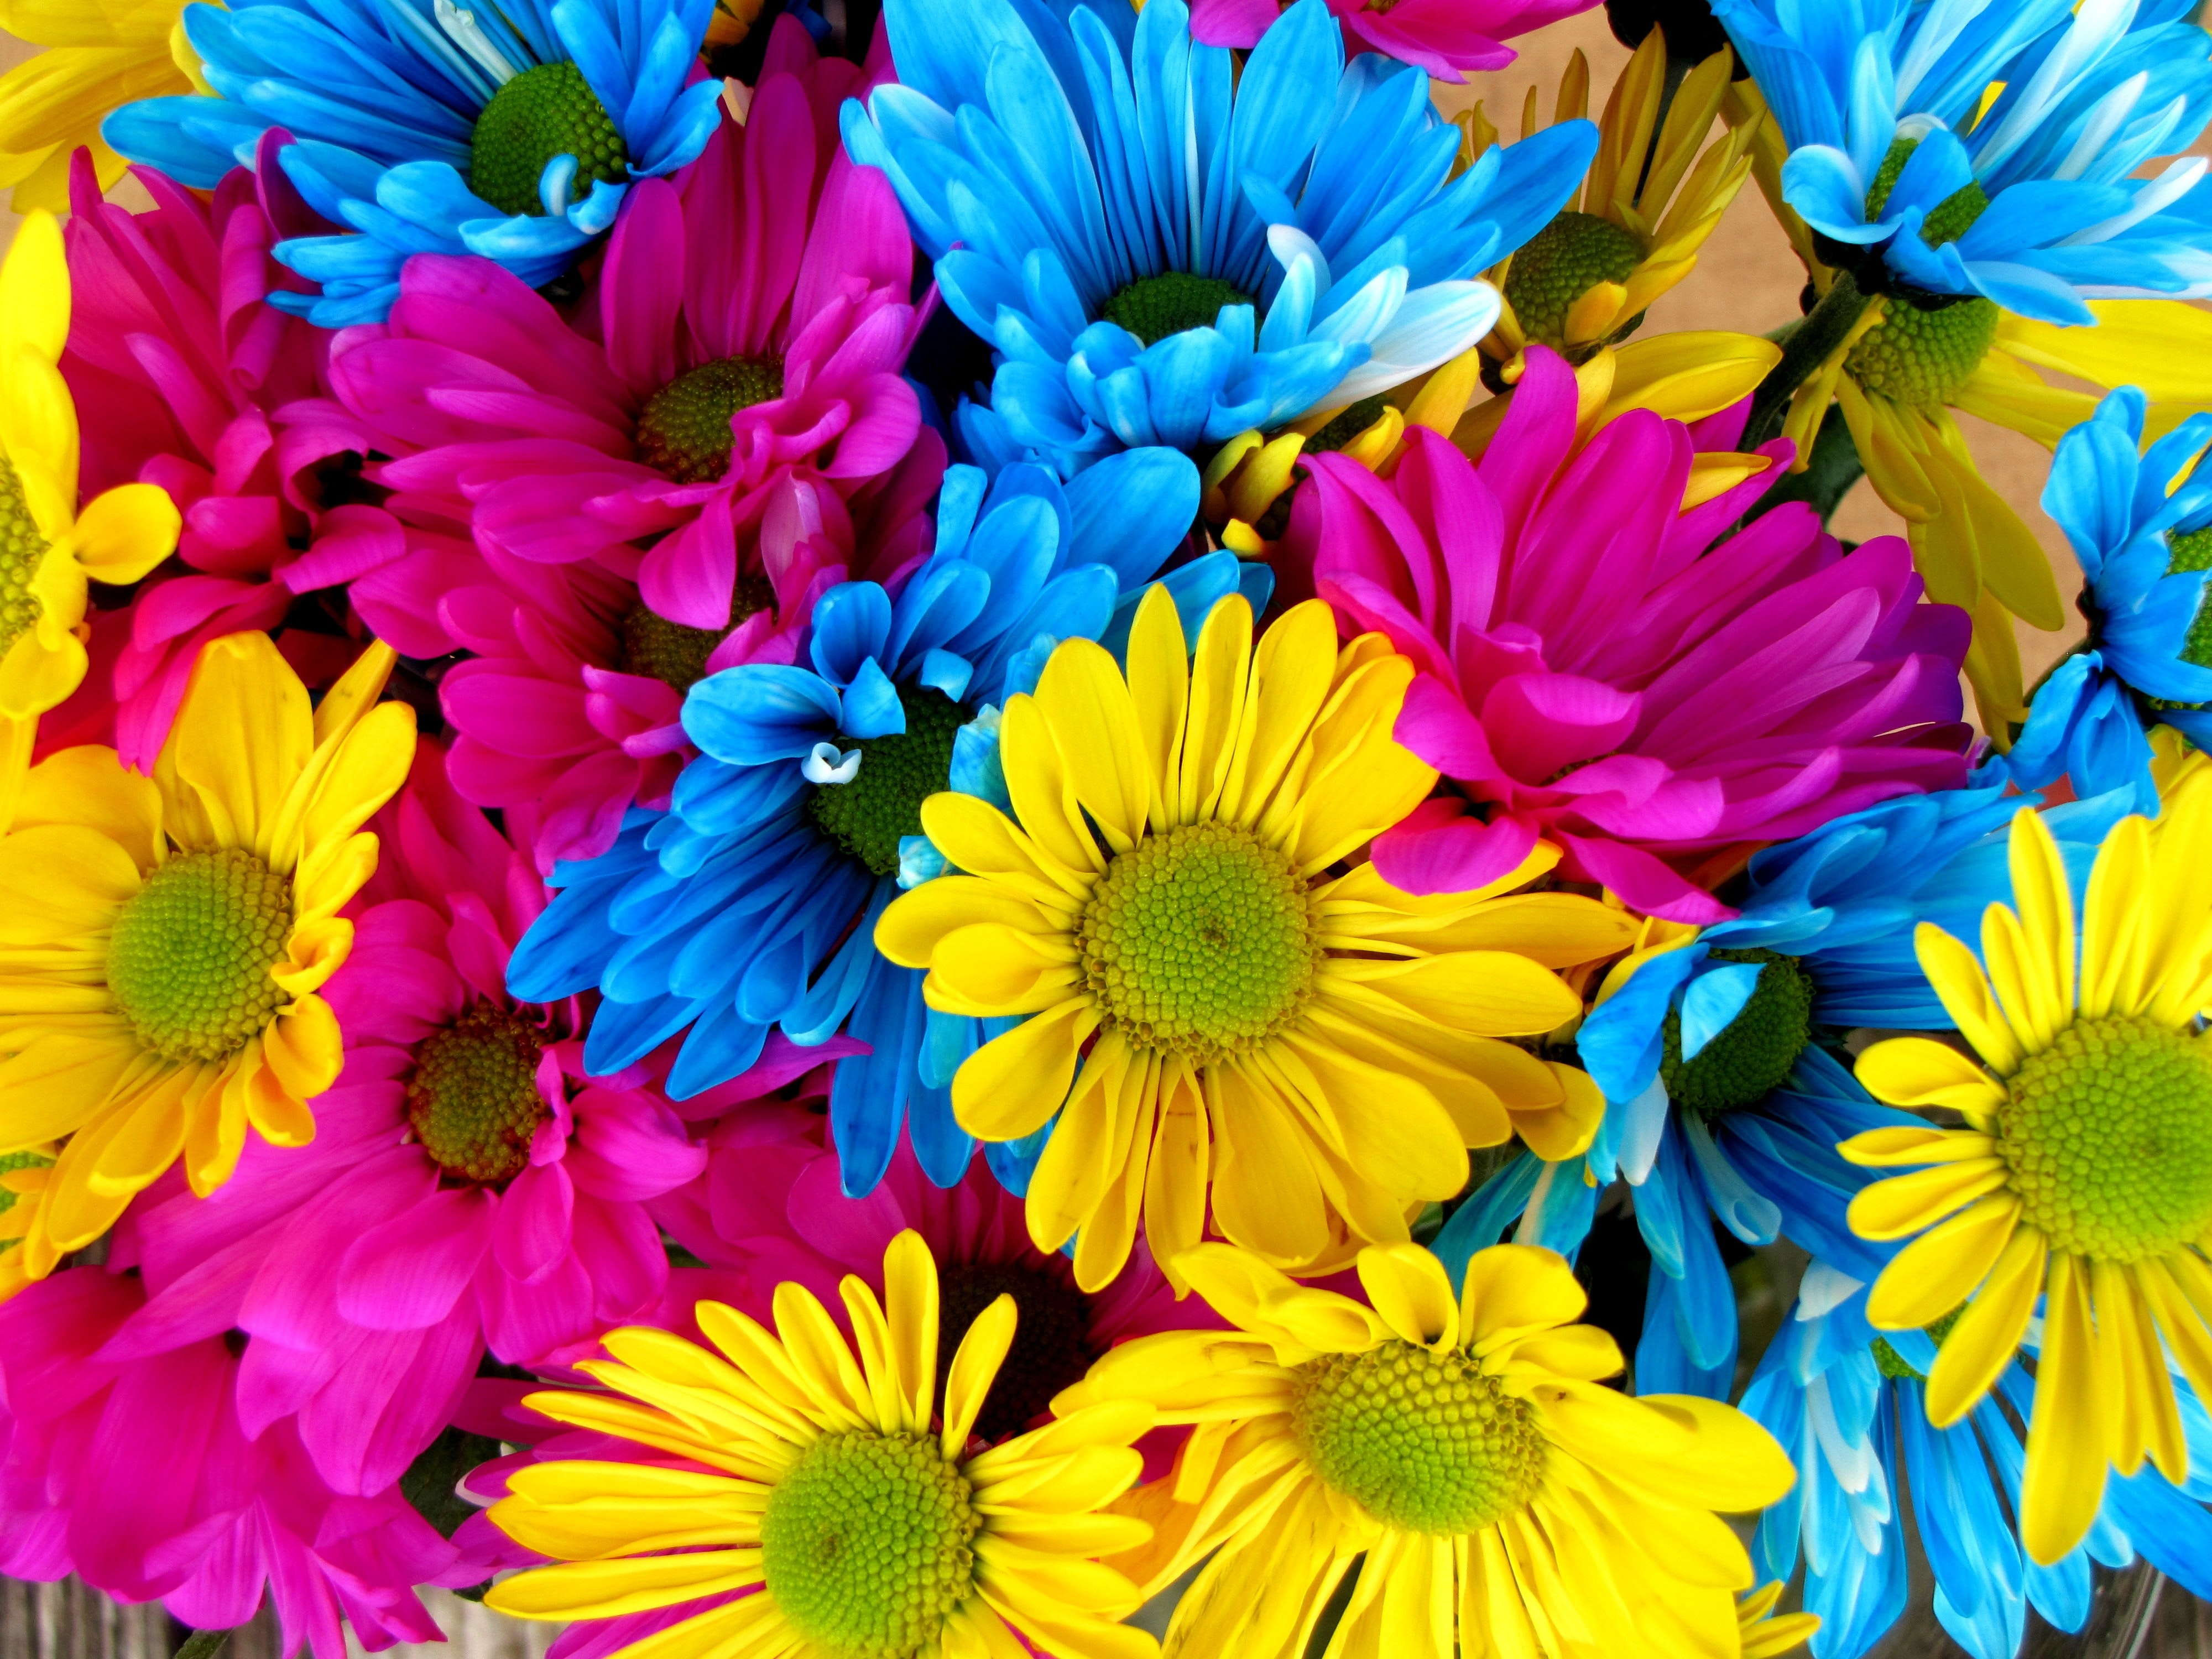 Free photo colorful daisies pink flowers daisy free download colorful daisies izmirmasajfo